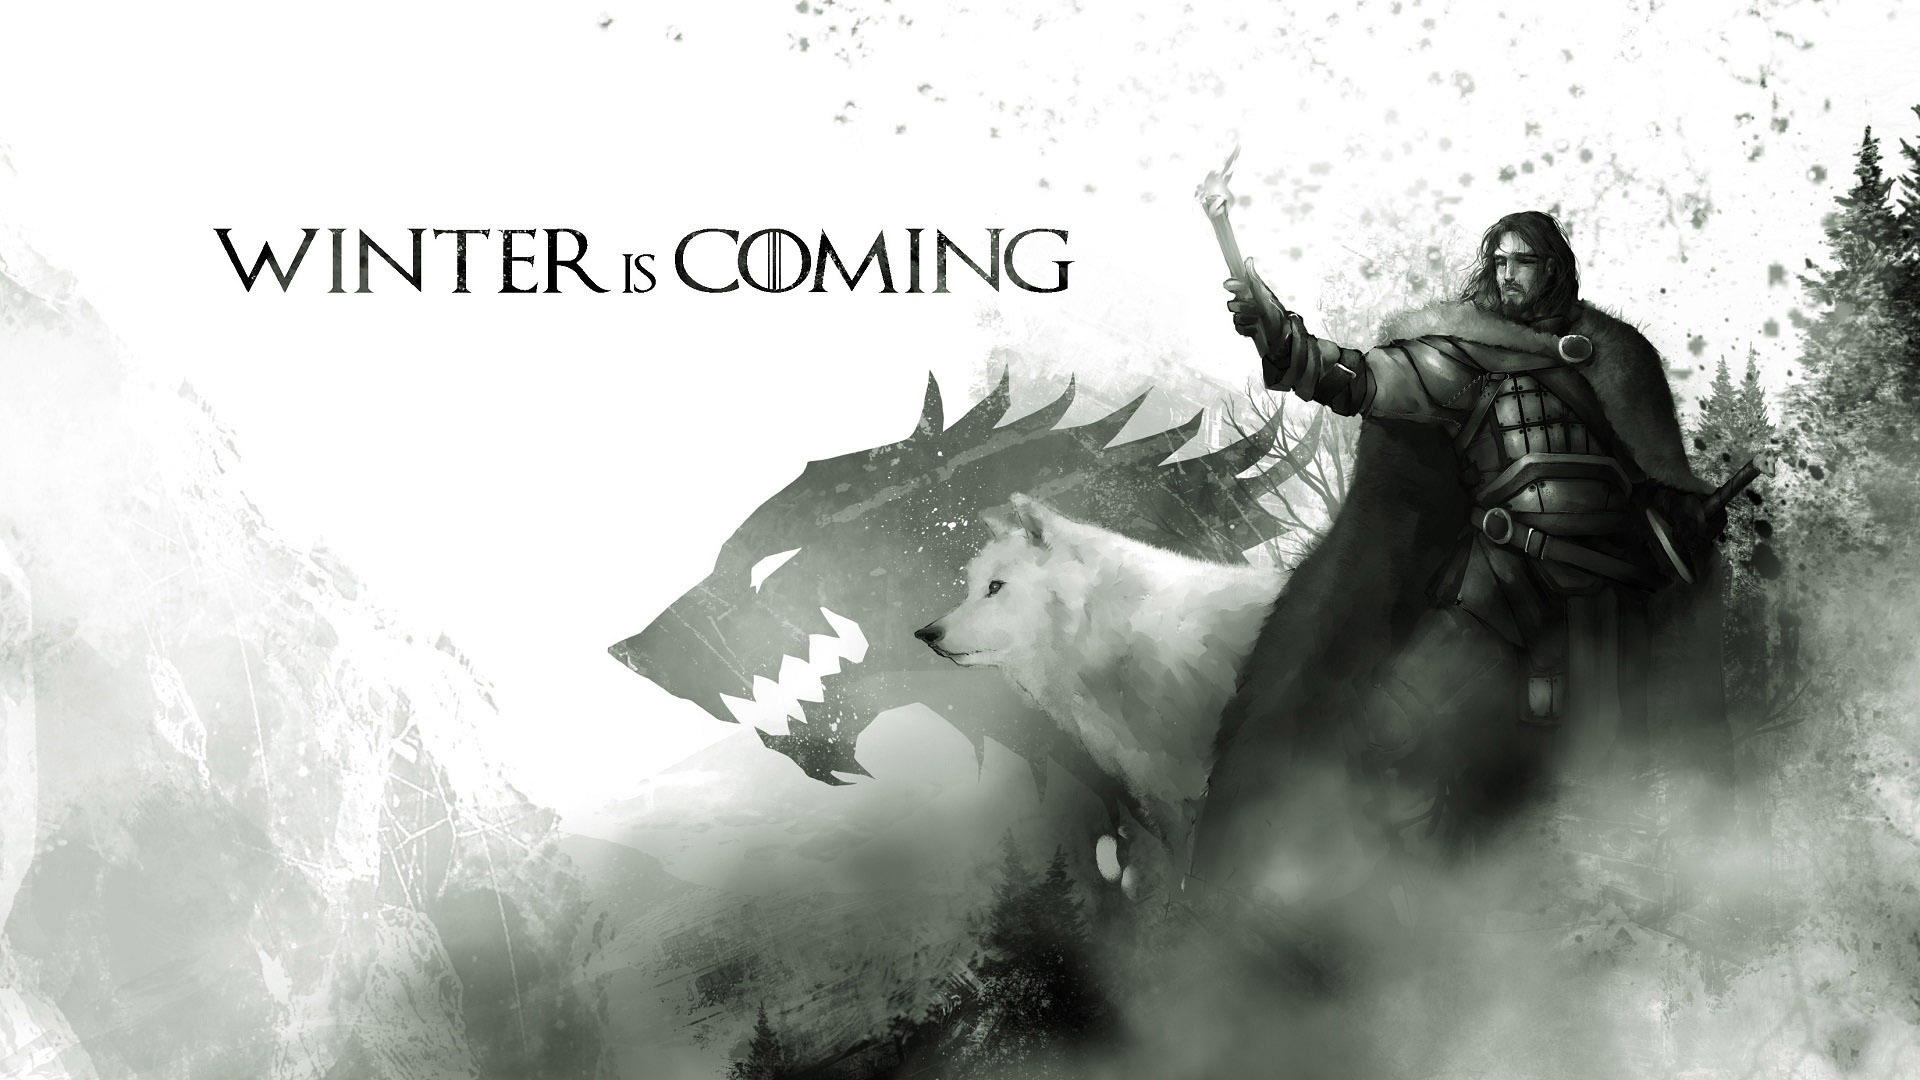 Game of thrones wallpaper   SF Wallpaper 1920x1080